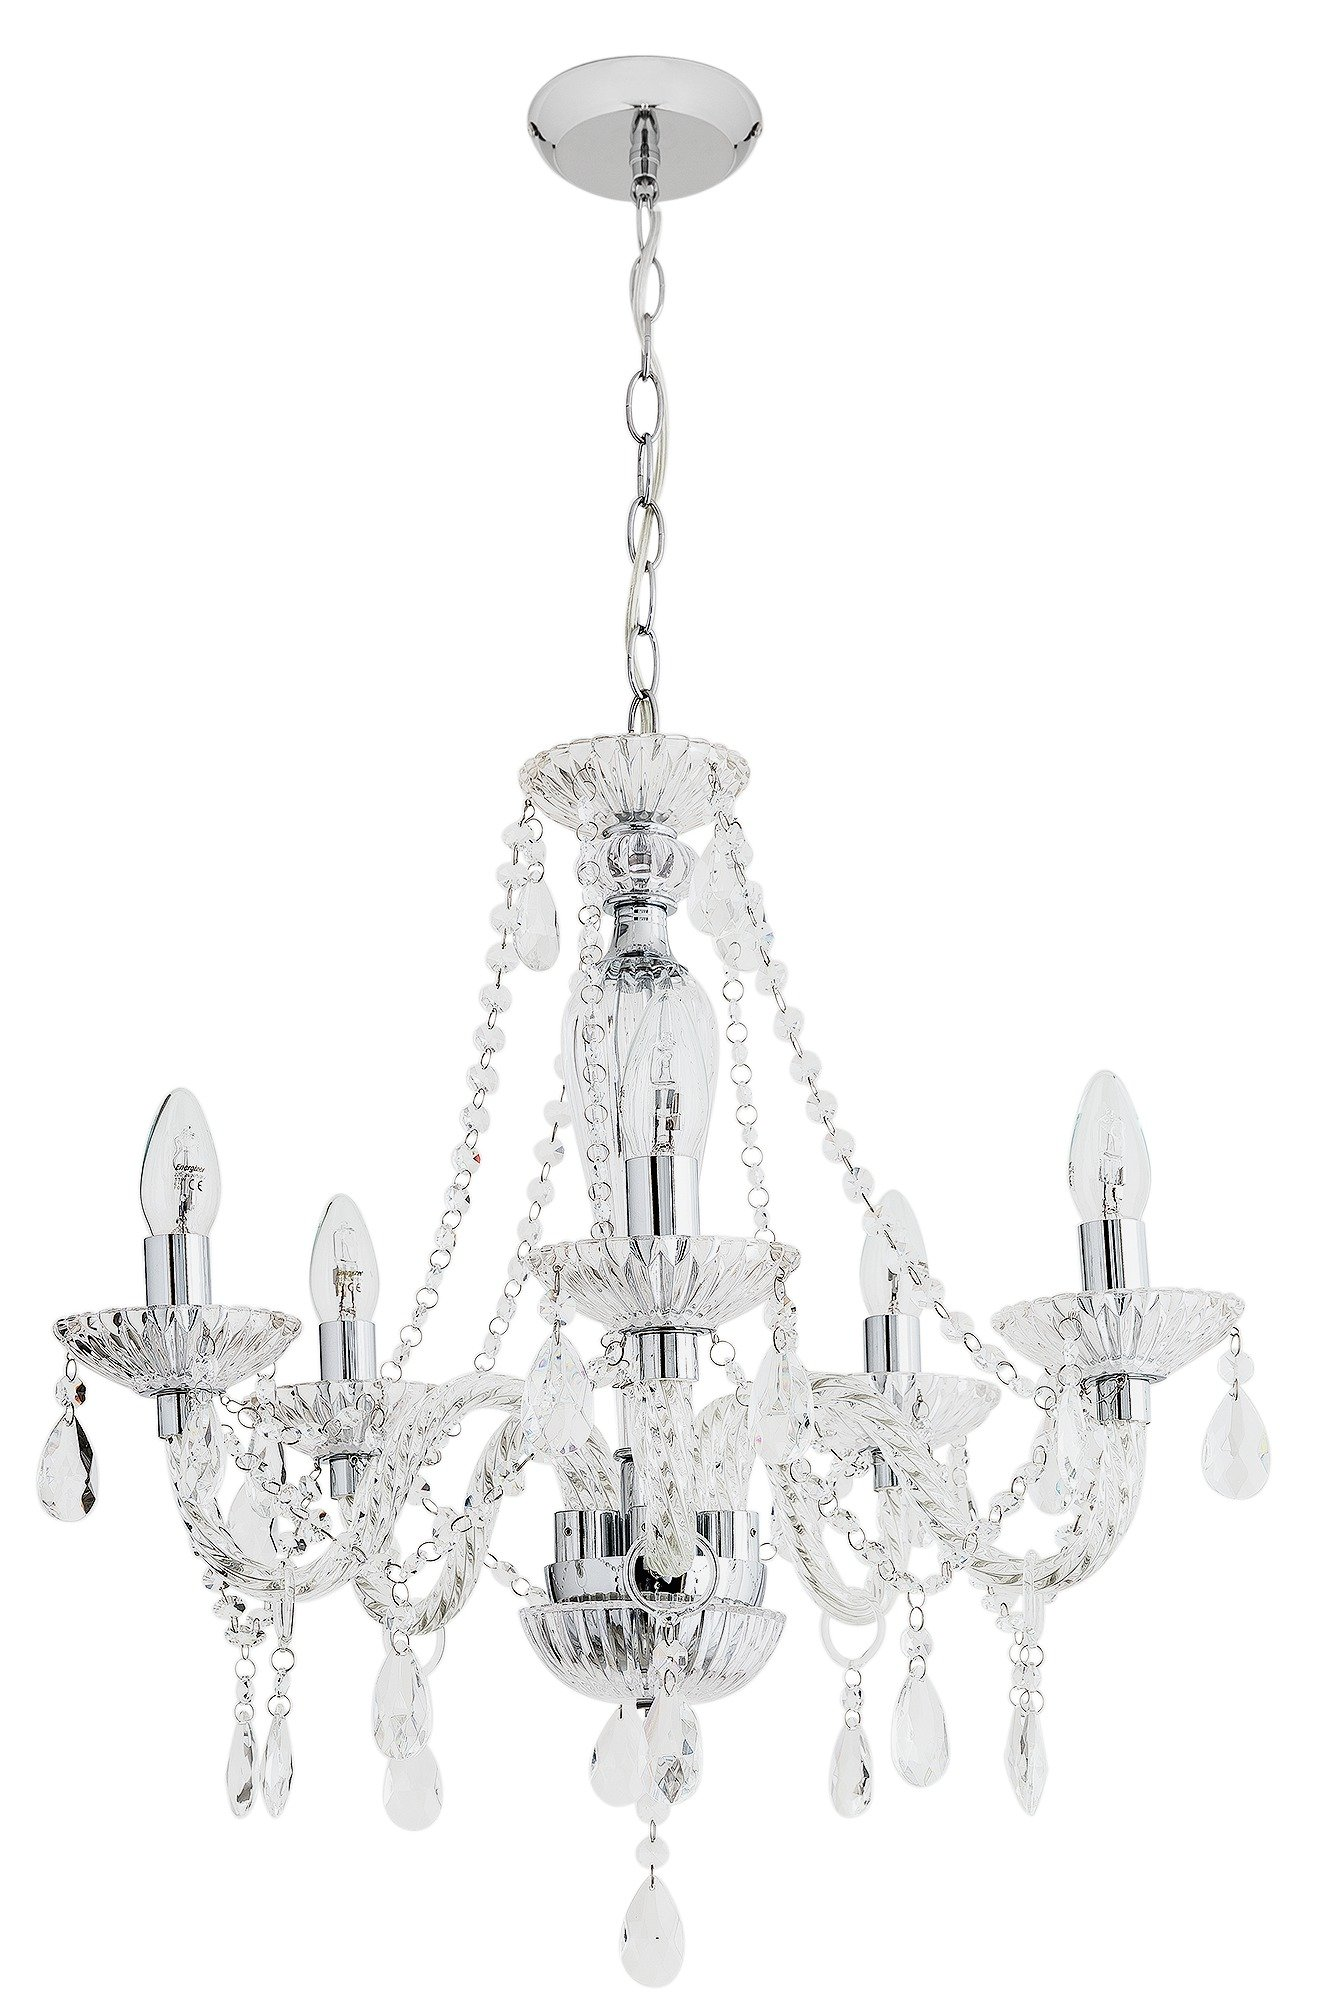 Argos Home Como 5 Light Glass Ceiling Fitting